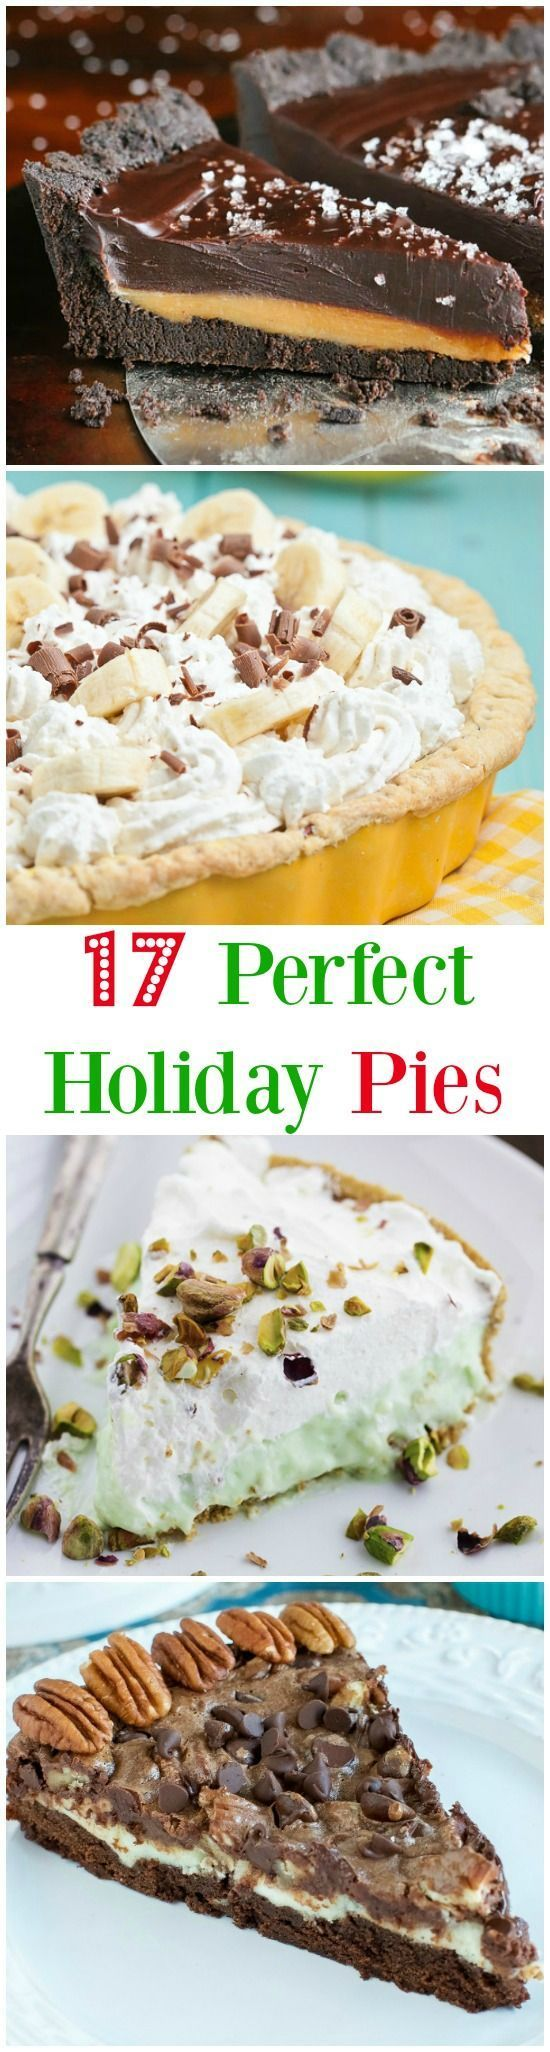 17 Easy and Impressive Holiday Pies! Thanksgiving Desserts   Christmas Desserts